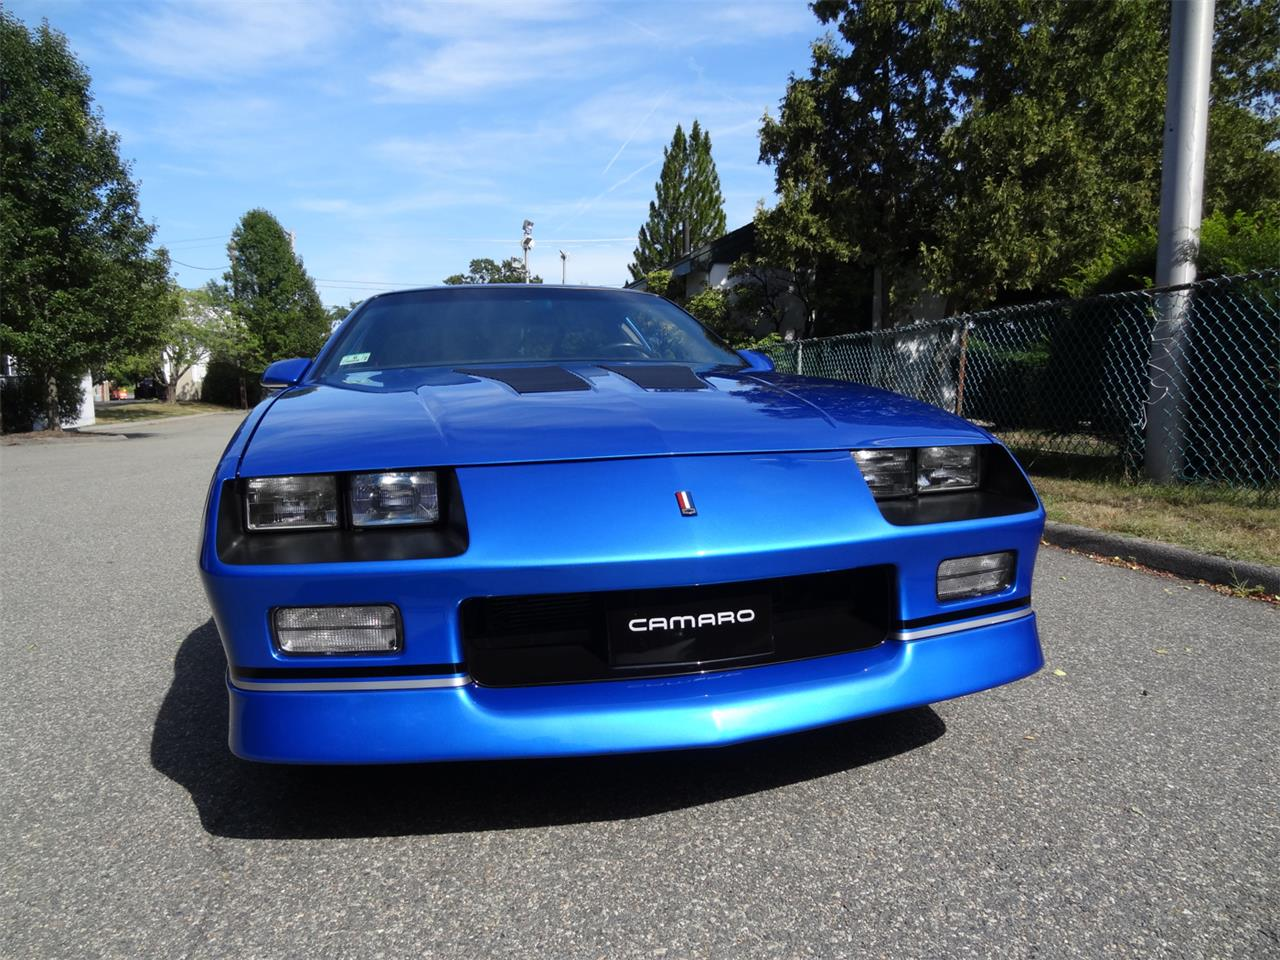 Large Picture of 1983 Camaro IROC Z28 - $30,000.00 Offered by a Private Seller - QUEA